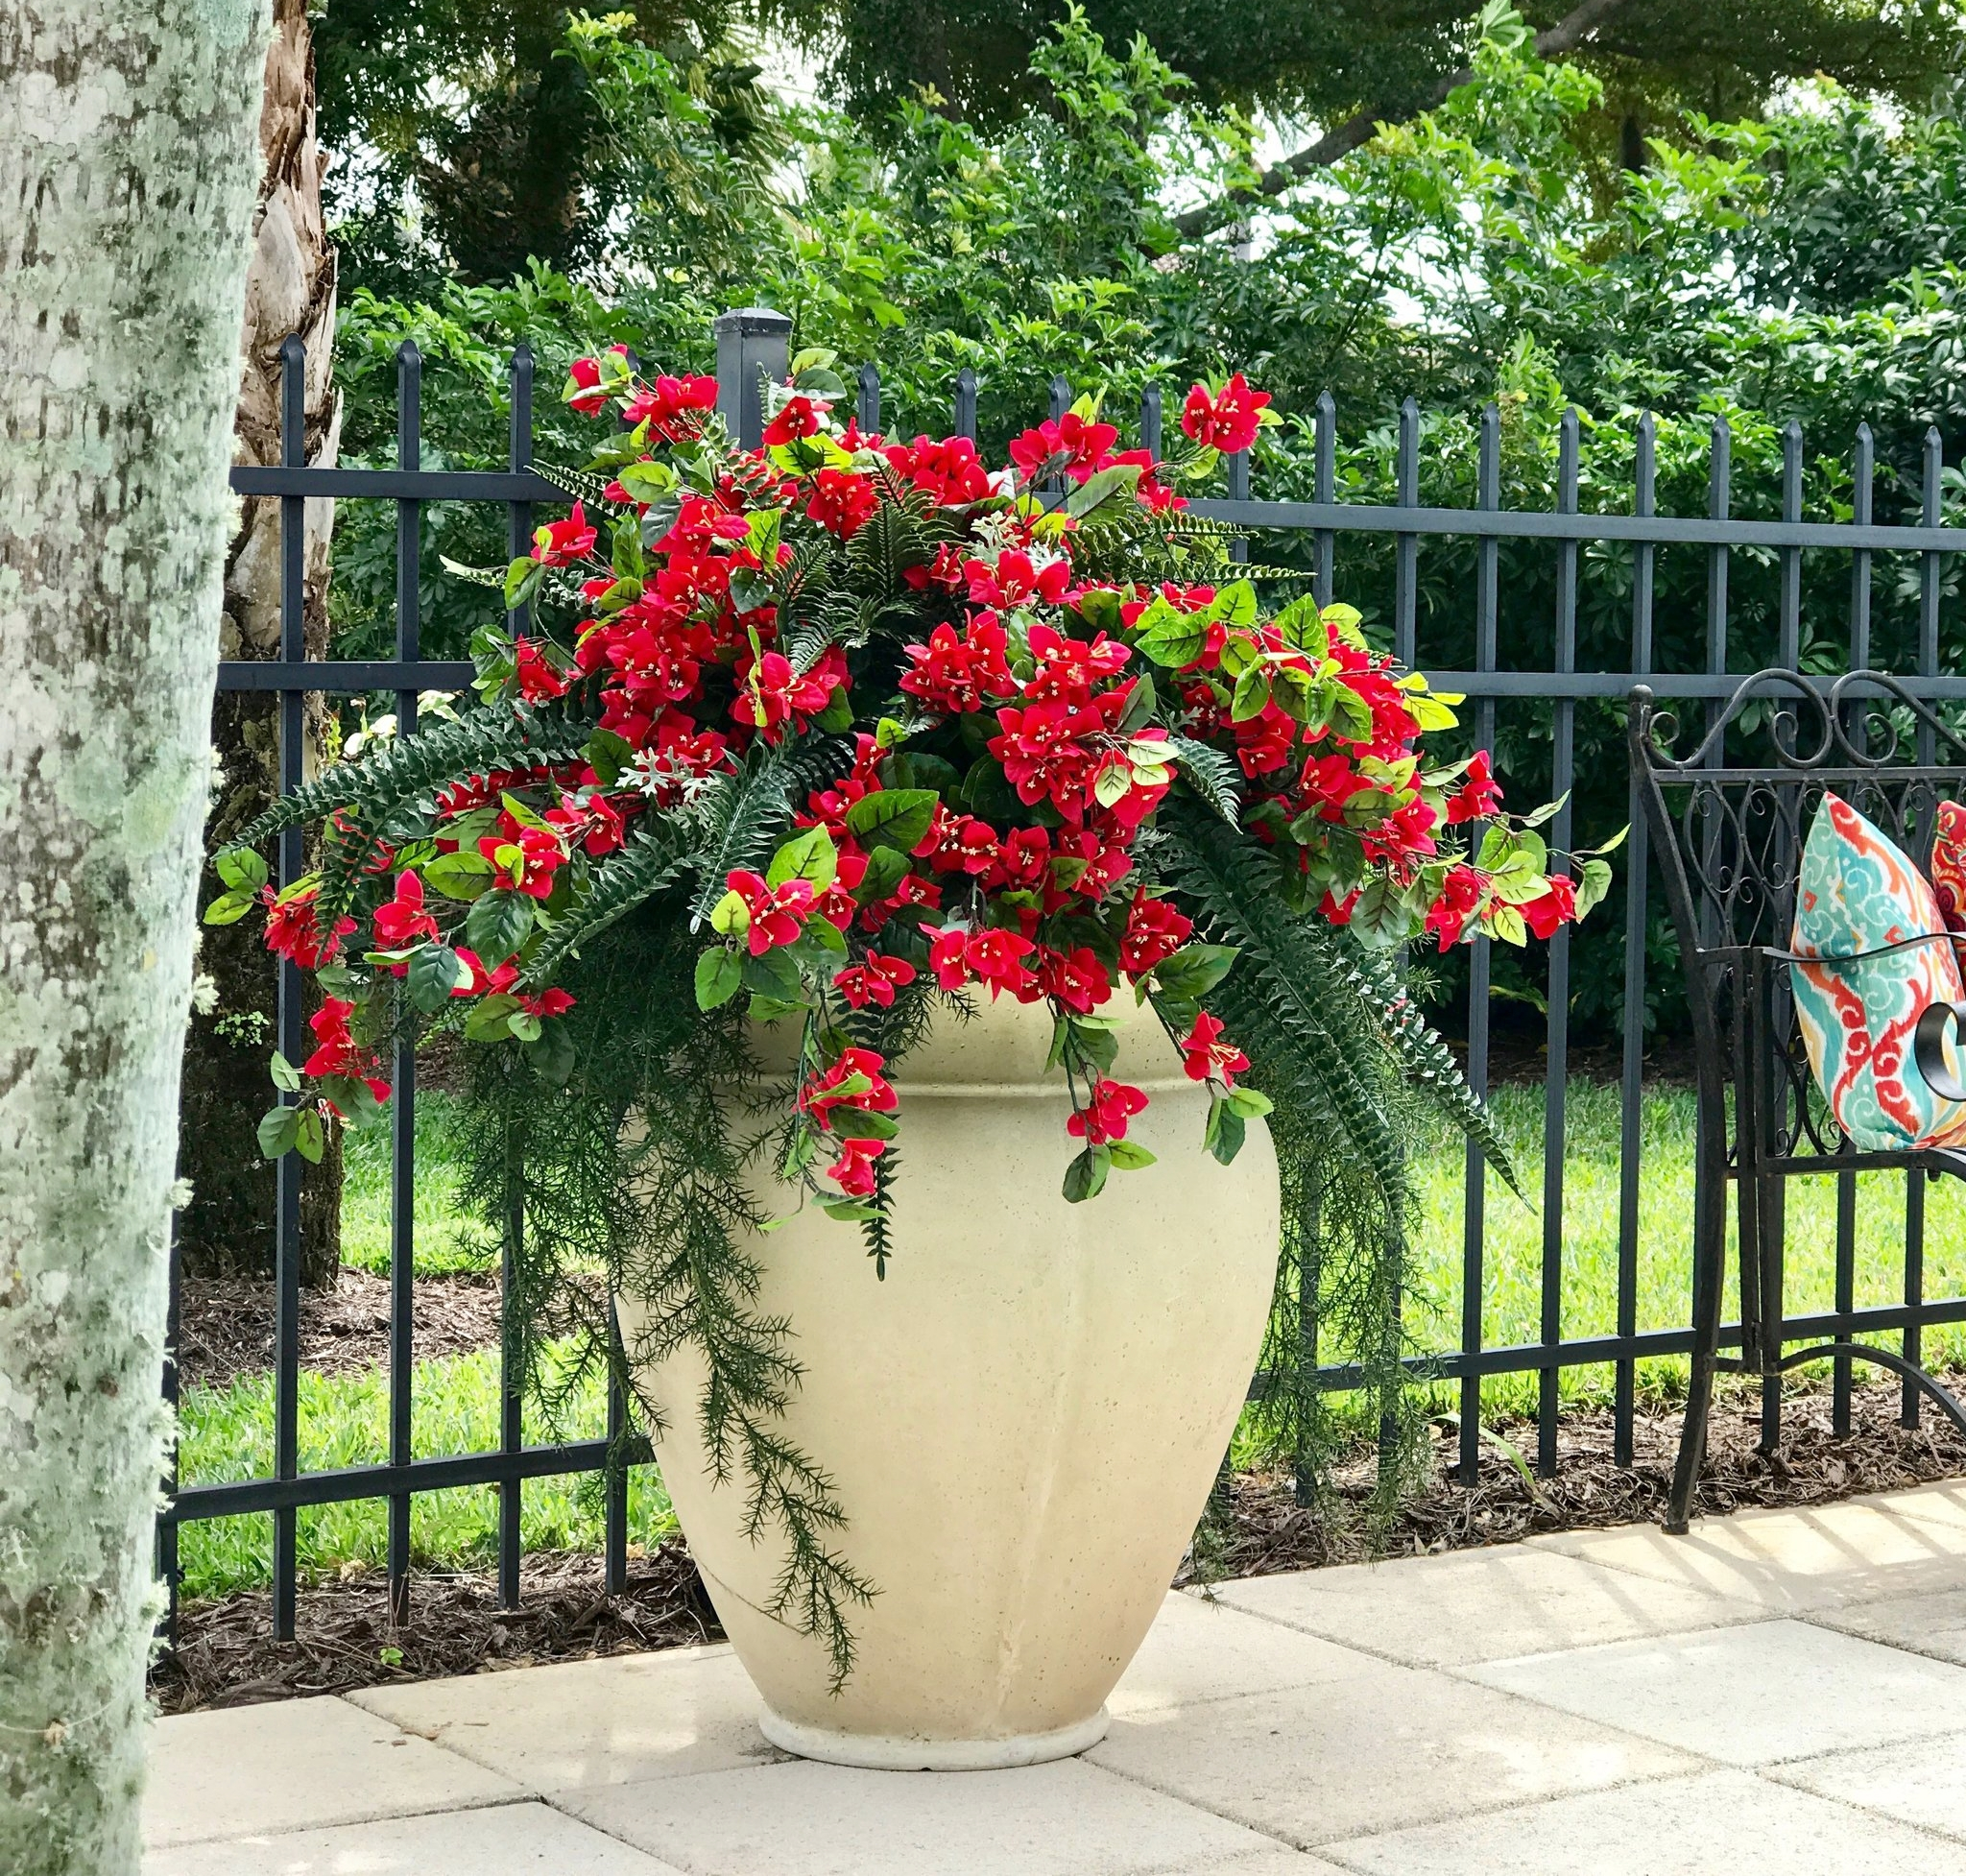 CONTAINER OF OUTDOOR ARTIFICIAL PLANTS